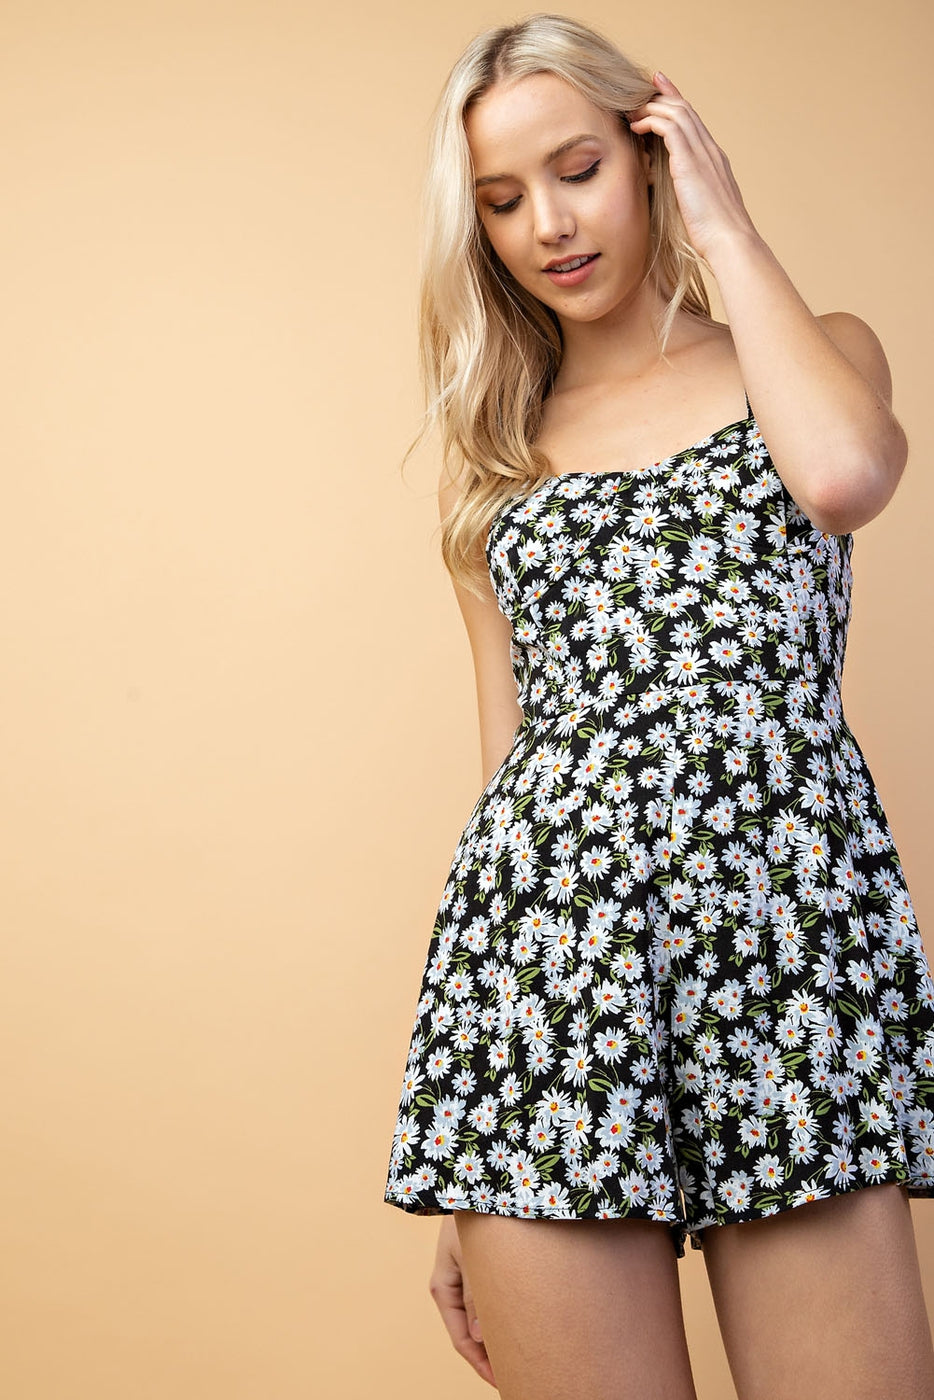 Ariel Romper With Sleeveless Floral Smock Back In Black Floral Siin Bees